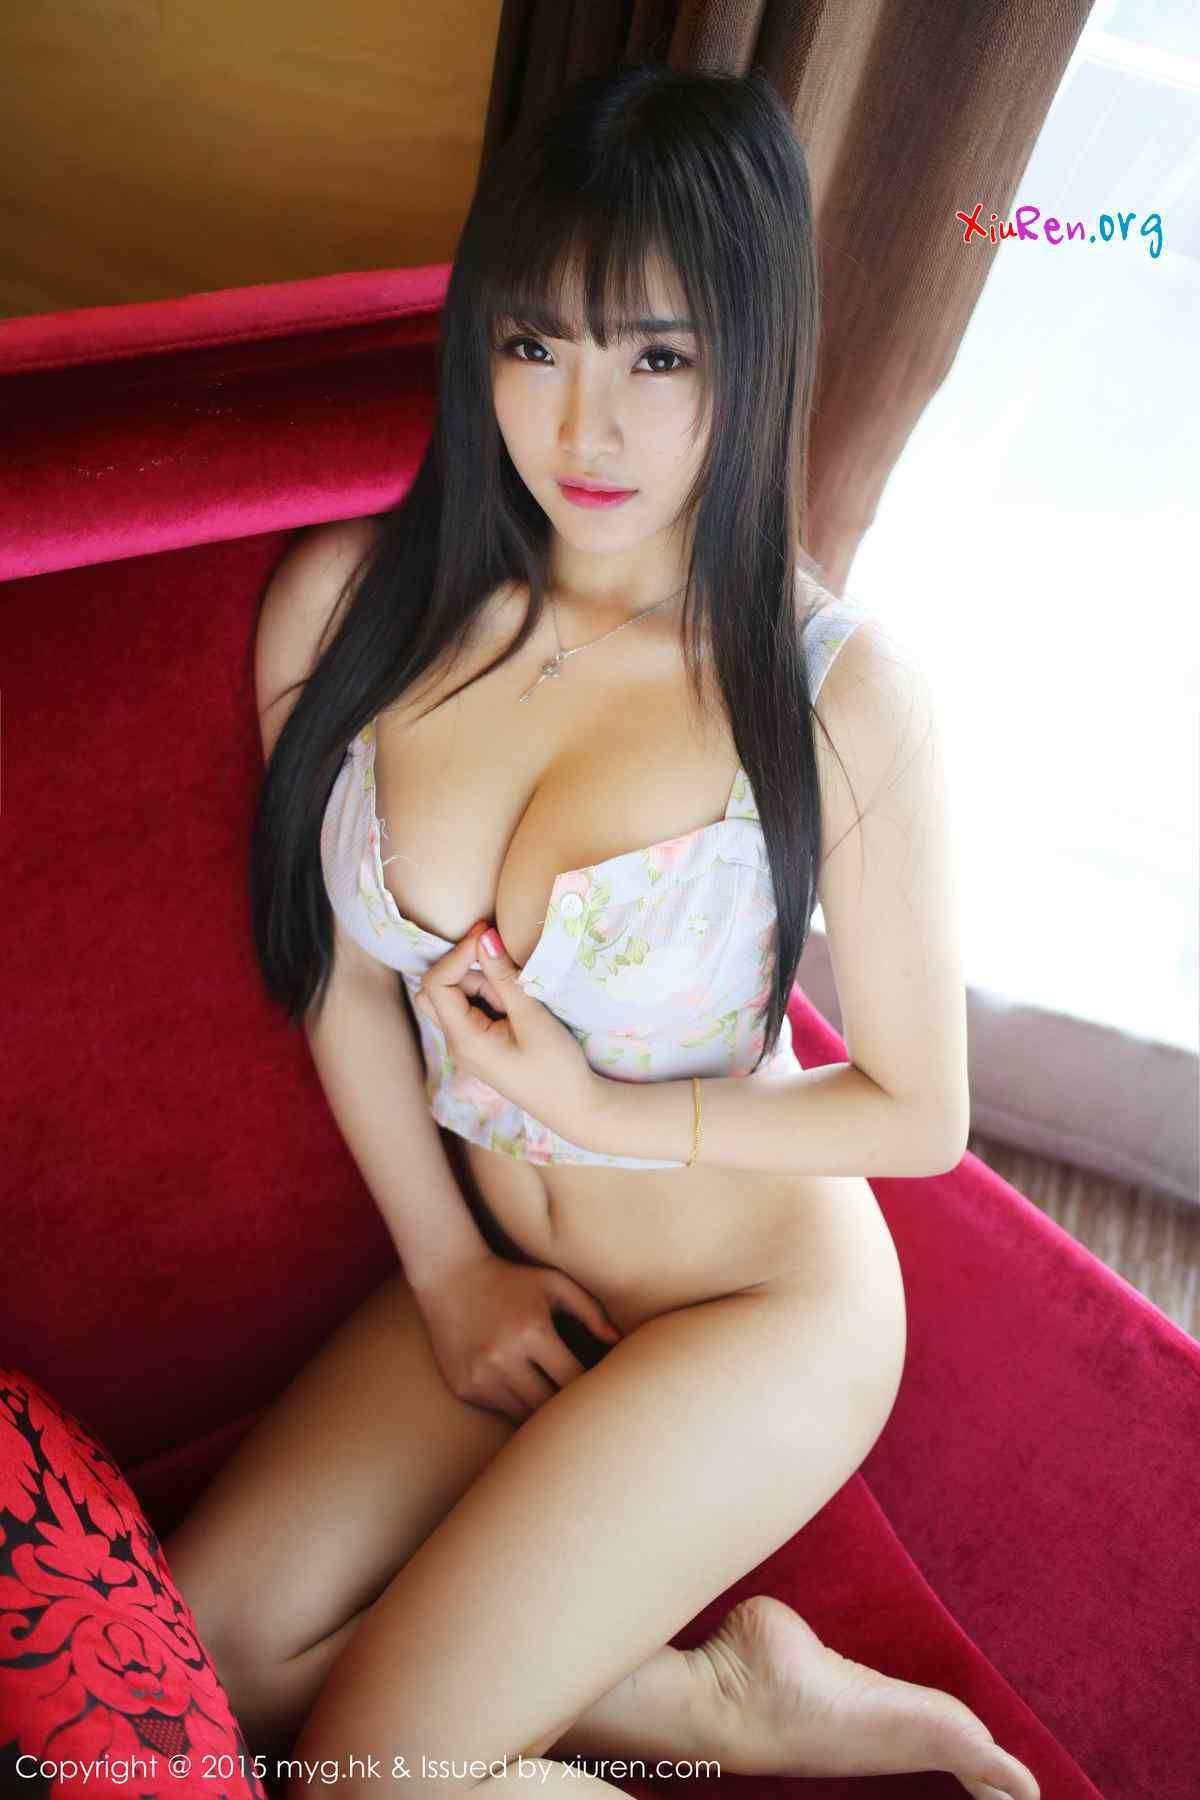 Sexy almost nude asian women